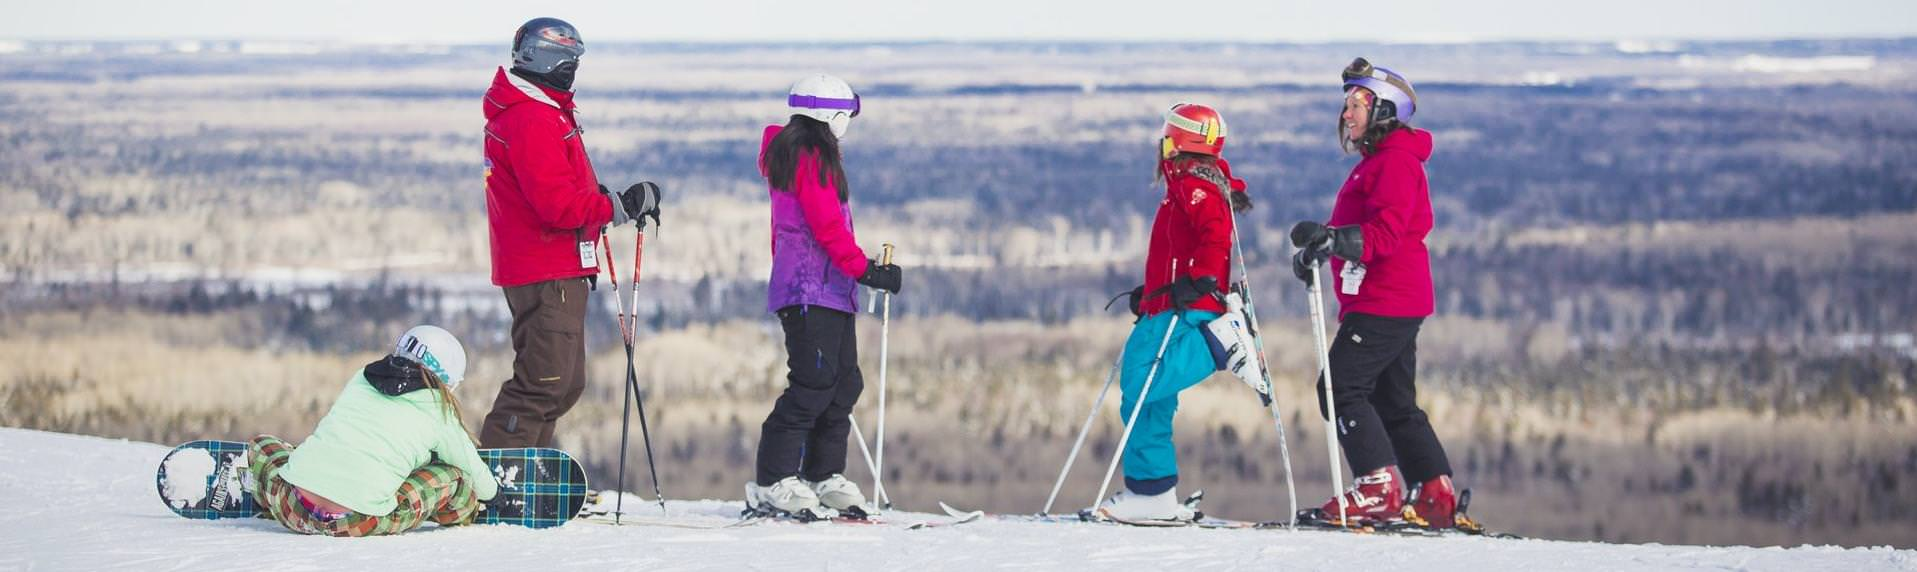 A family of four standing atop a ski hill